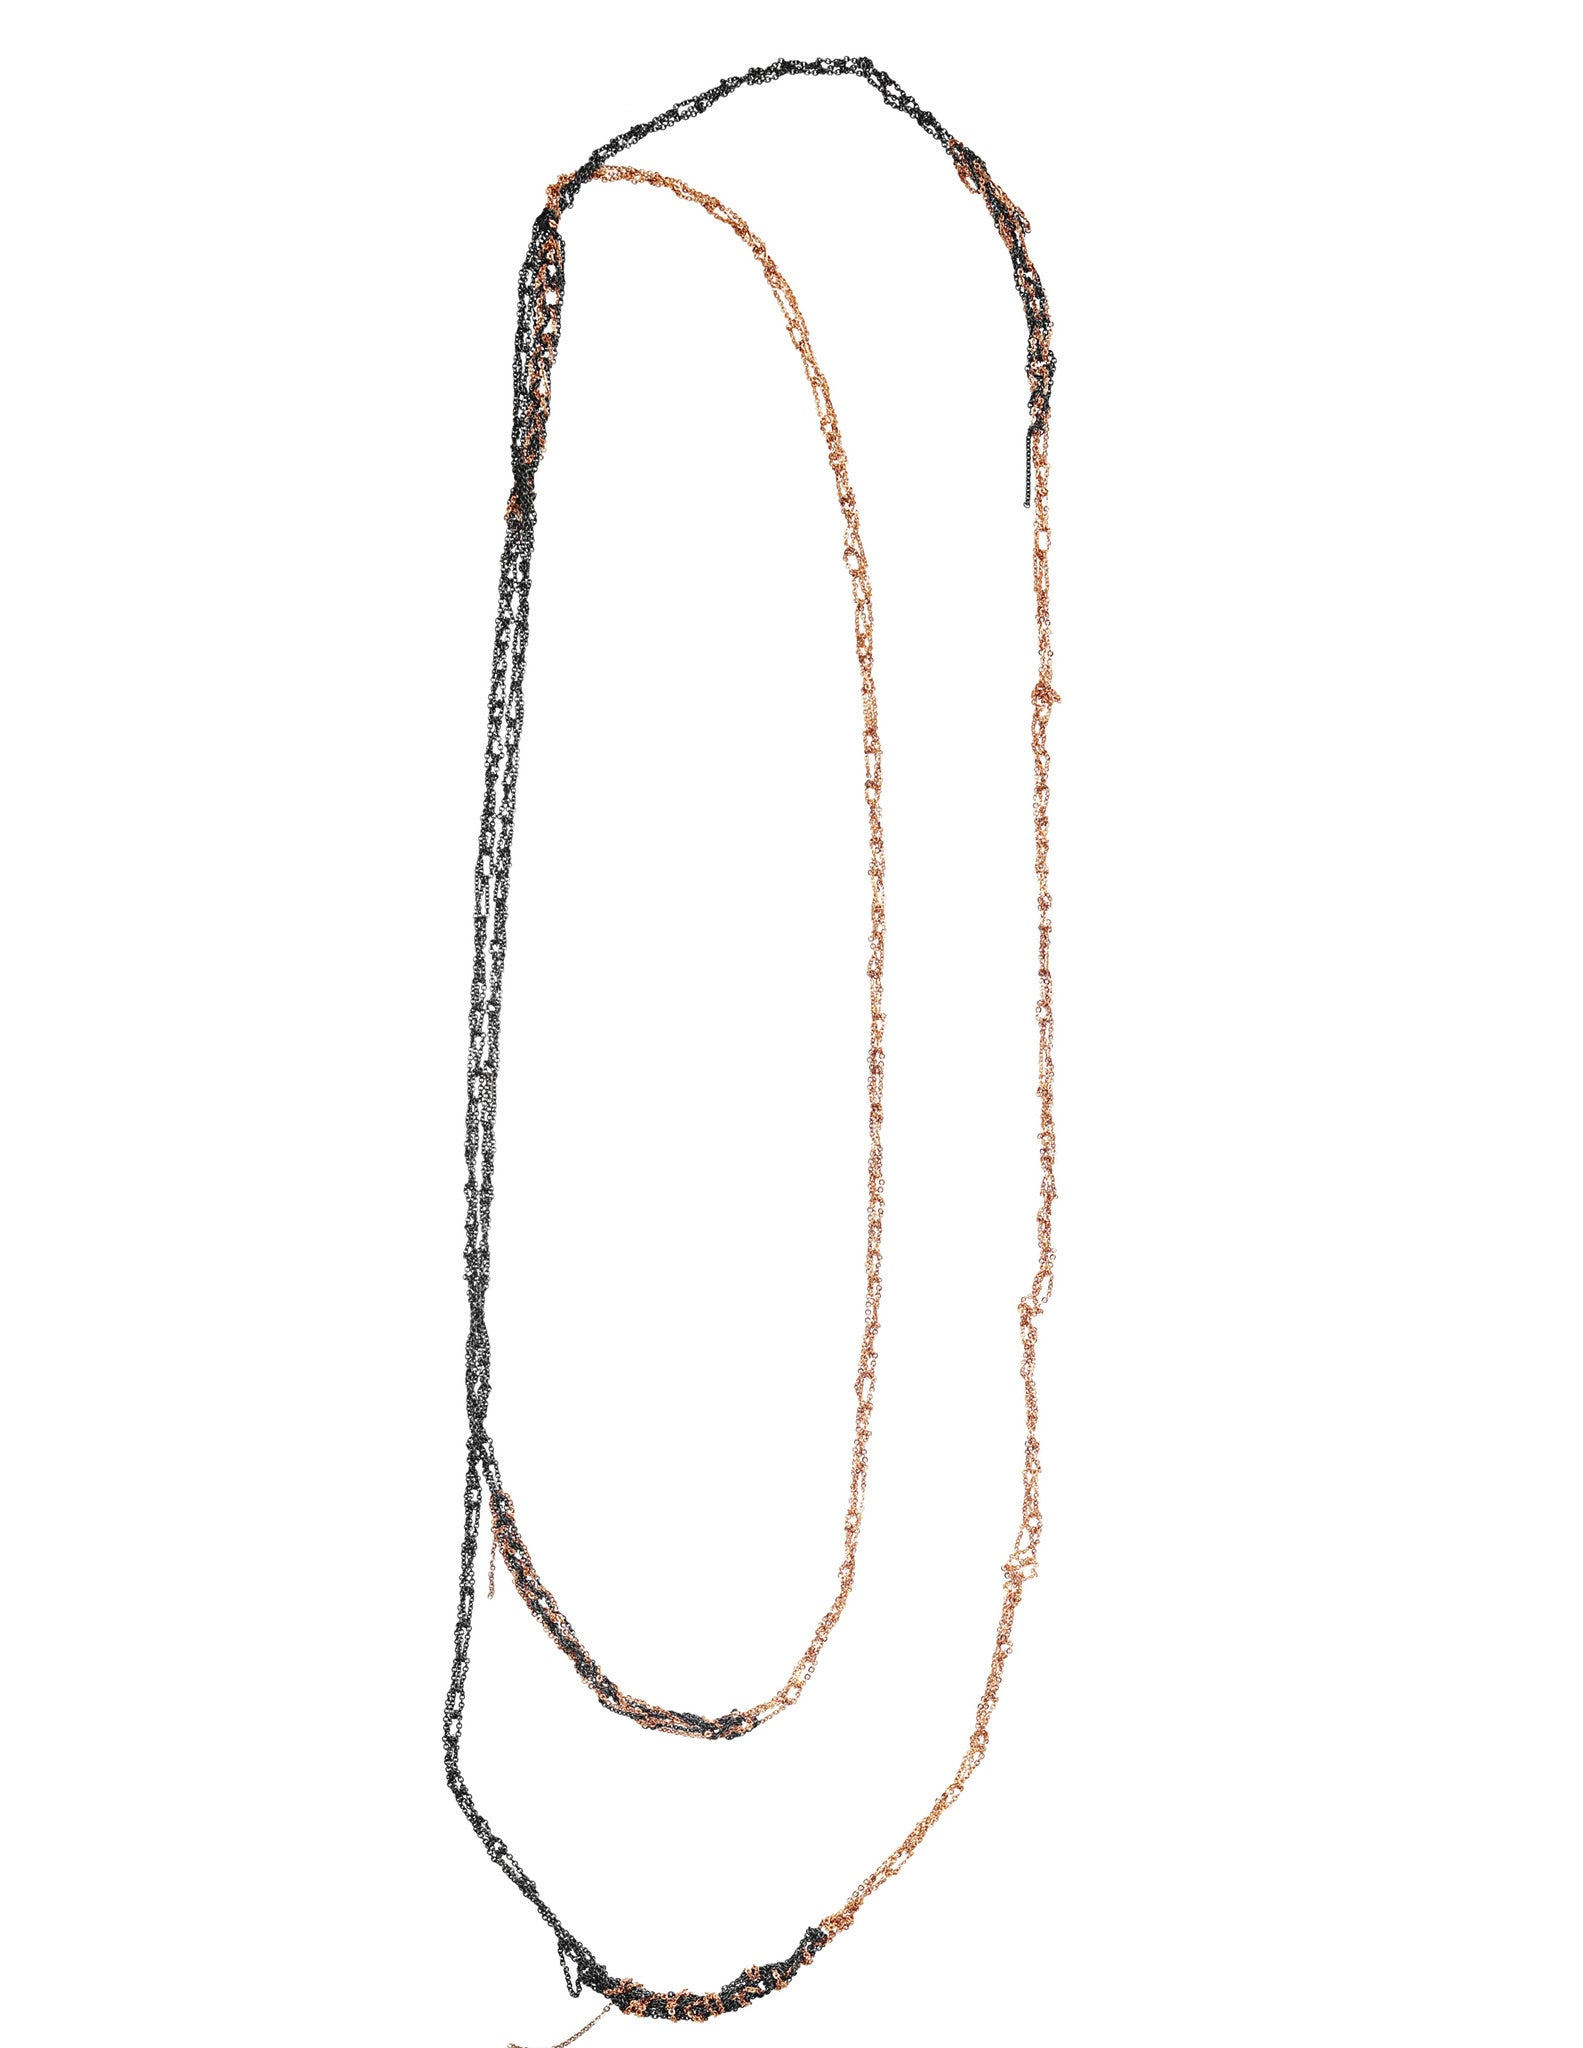 4-Tone Simple Necklace in Faded + Rose Gold